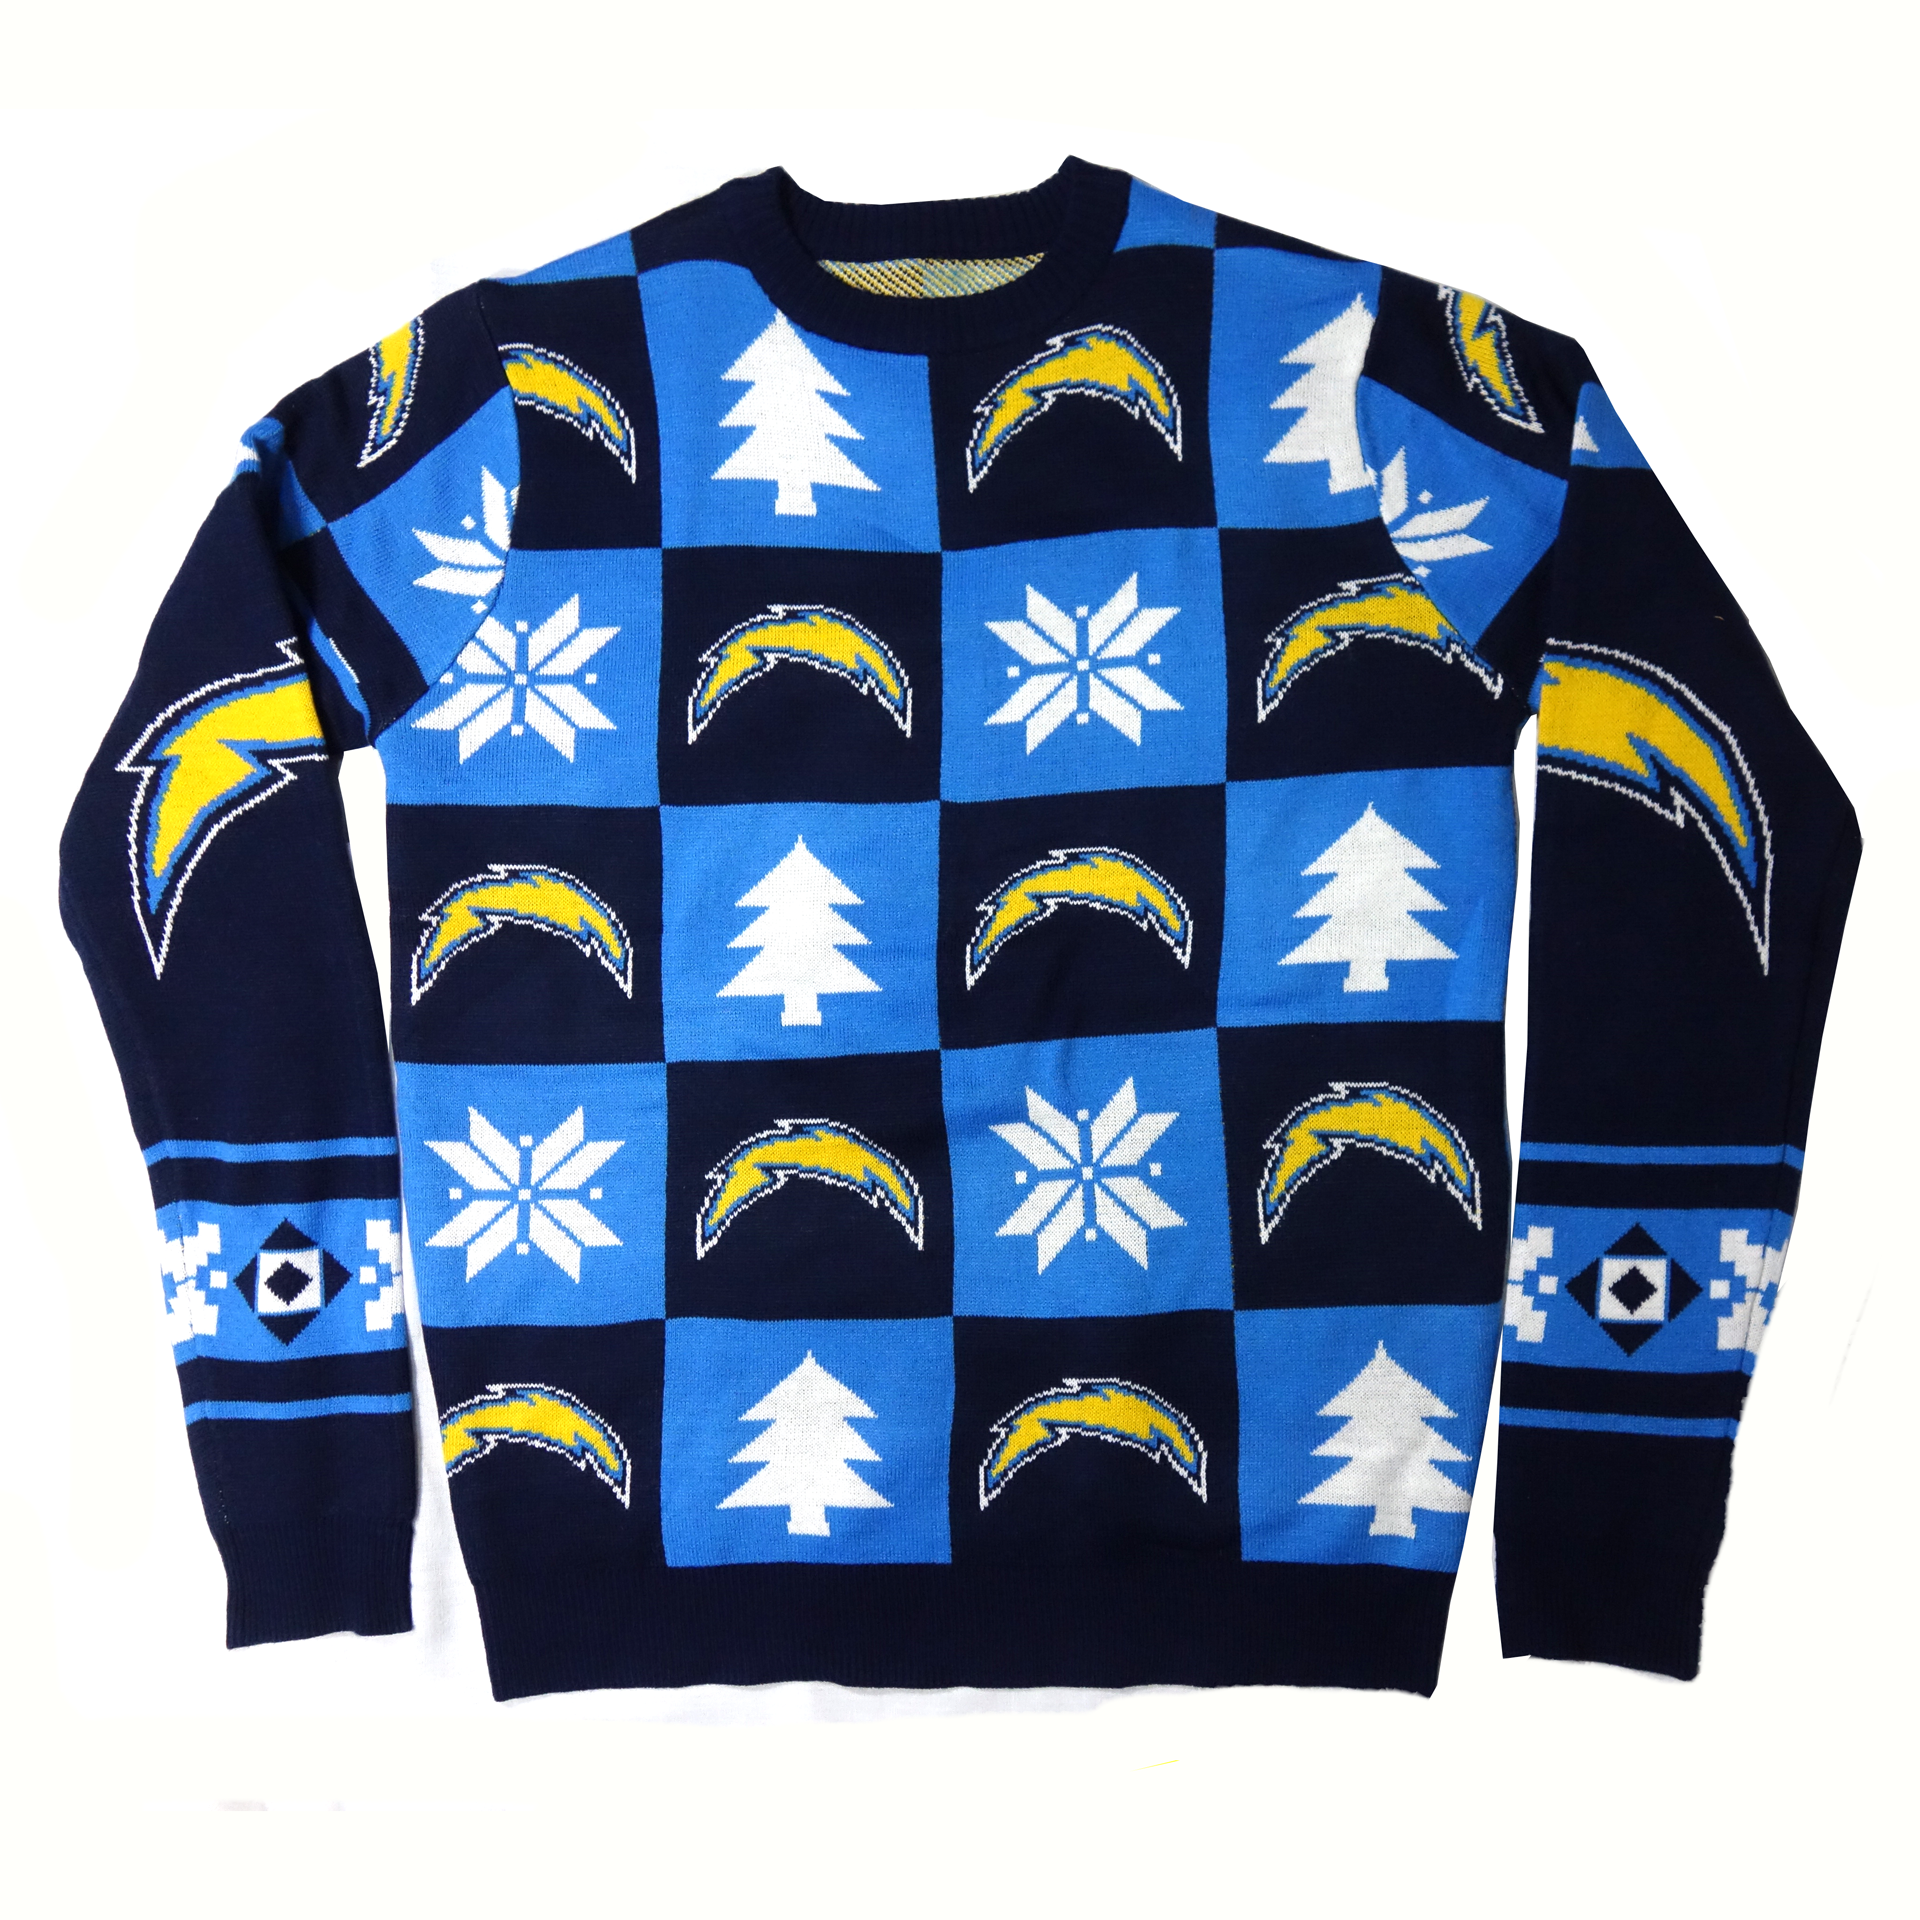 NFL Ugly Sweater Los Angeles Chargers Schachbrettmuster Weihnachtspullover